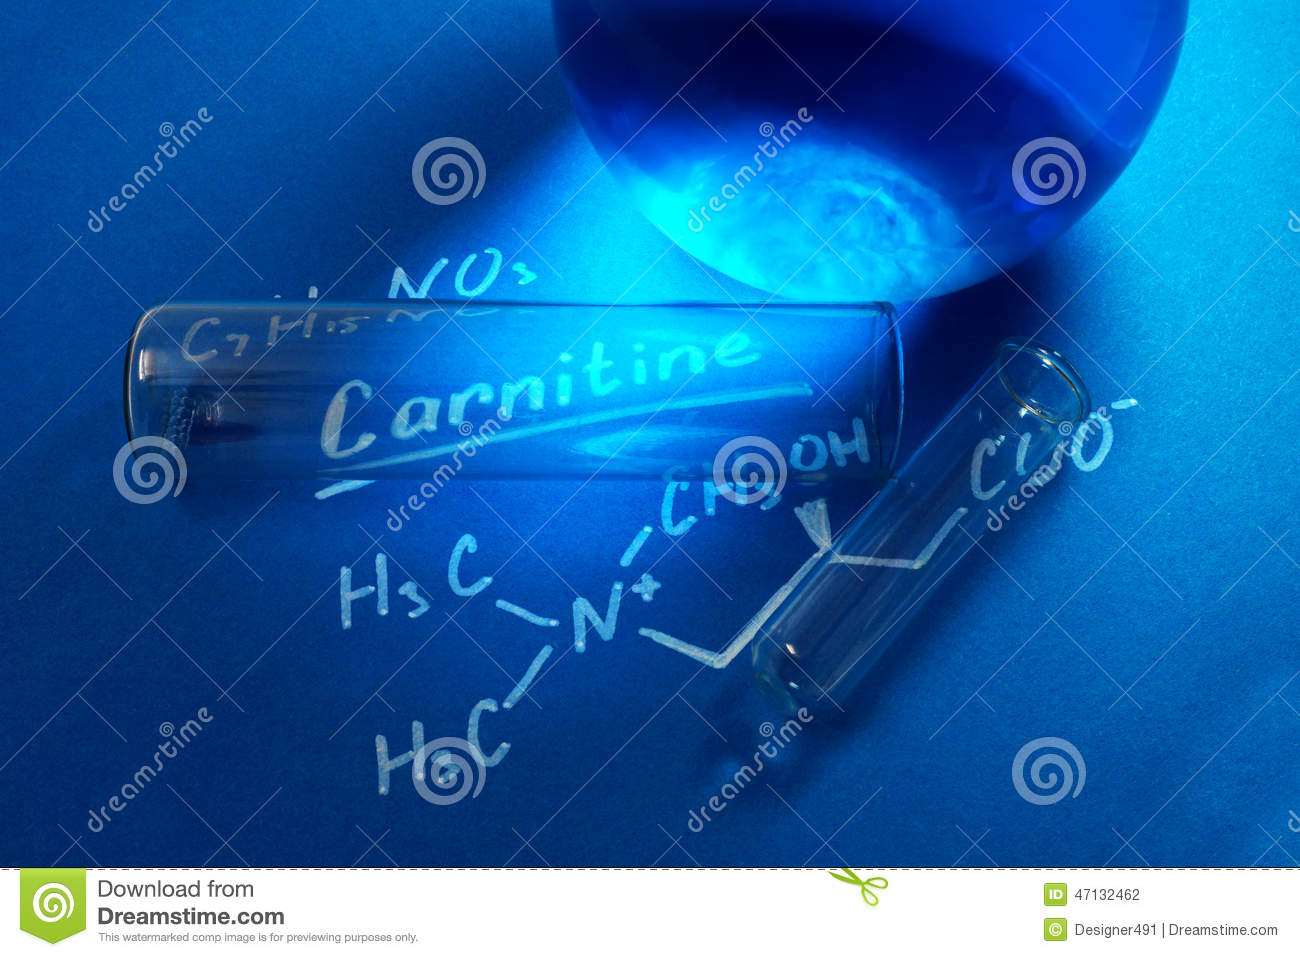 The chemical formula of carnitine